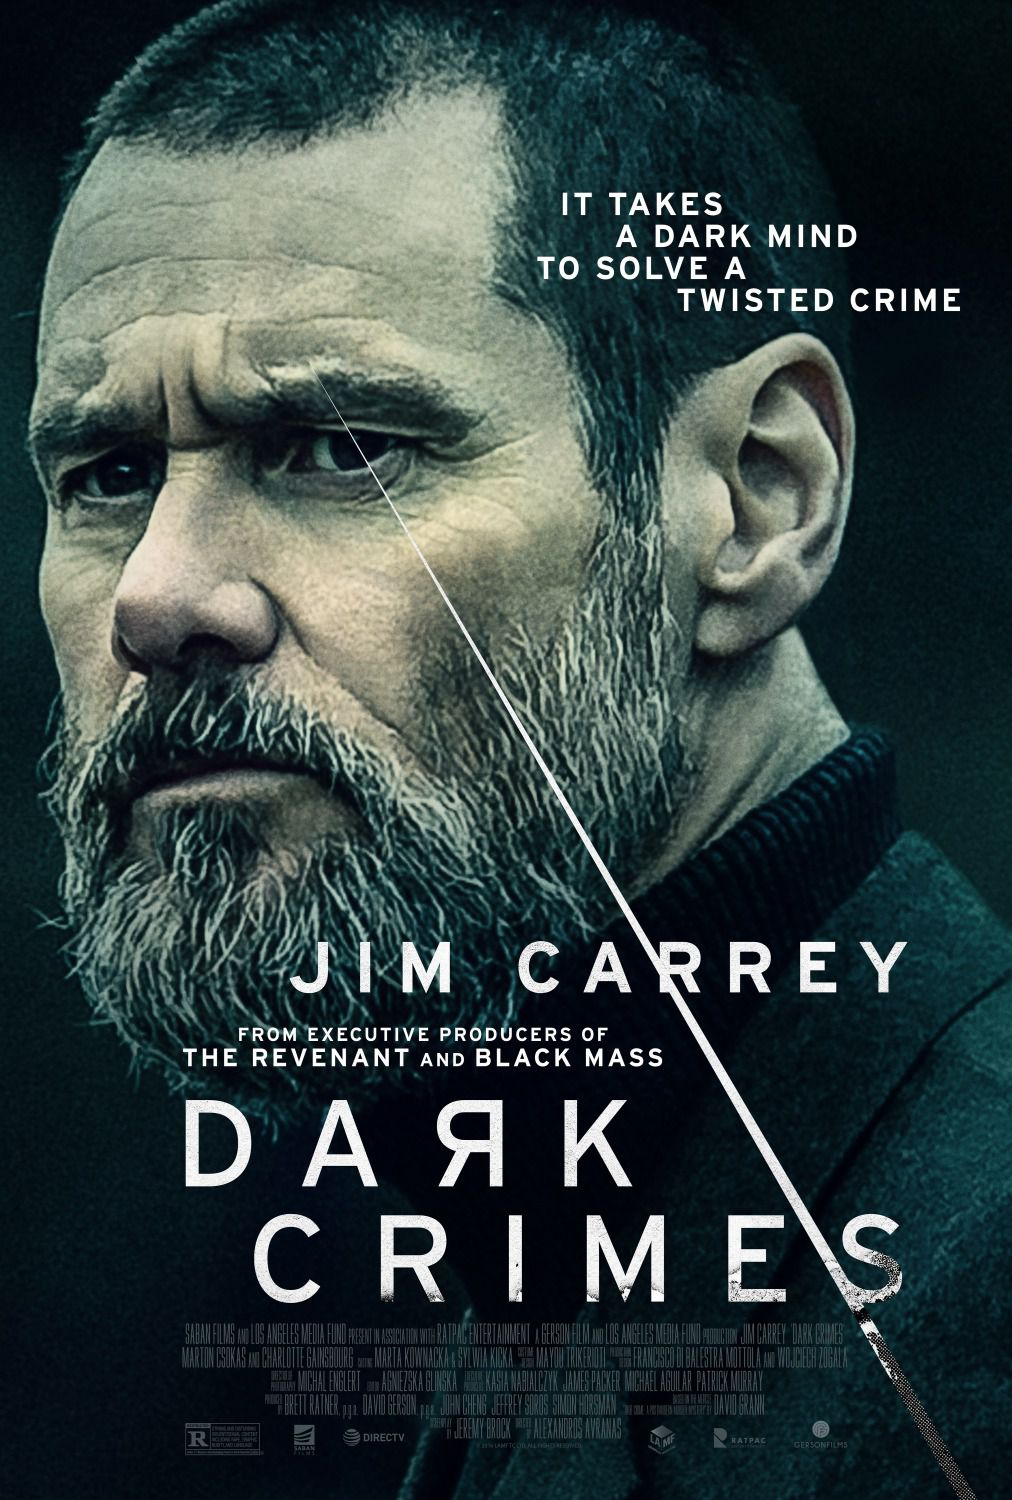 Dark Crimes - It takes a dark mind to solve a twisted crime - Cast: Jim Carrey, Charlotte Gainsbourg, Kati Outinen, Marton Csokas 2018